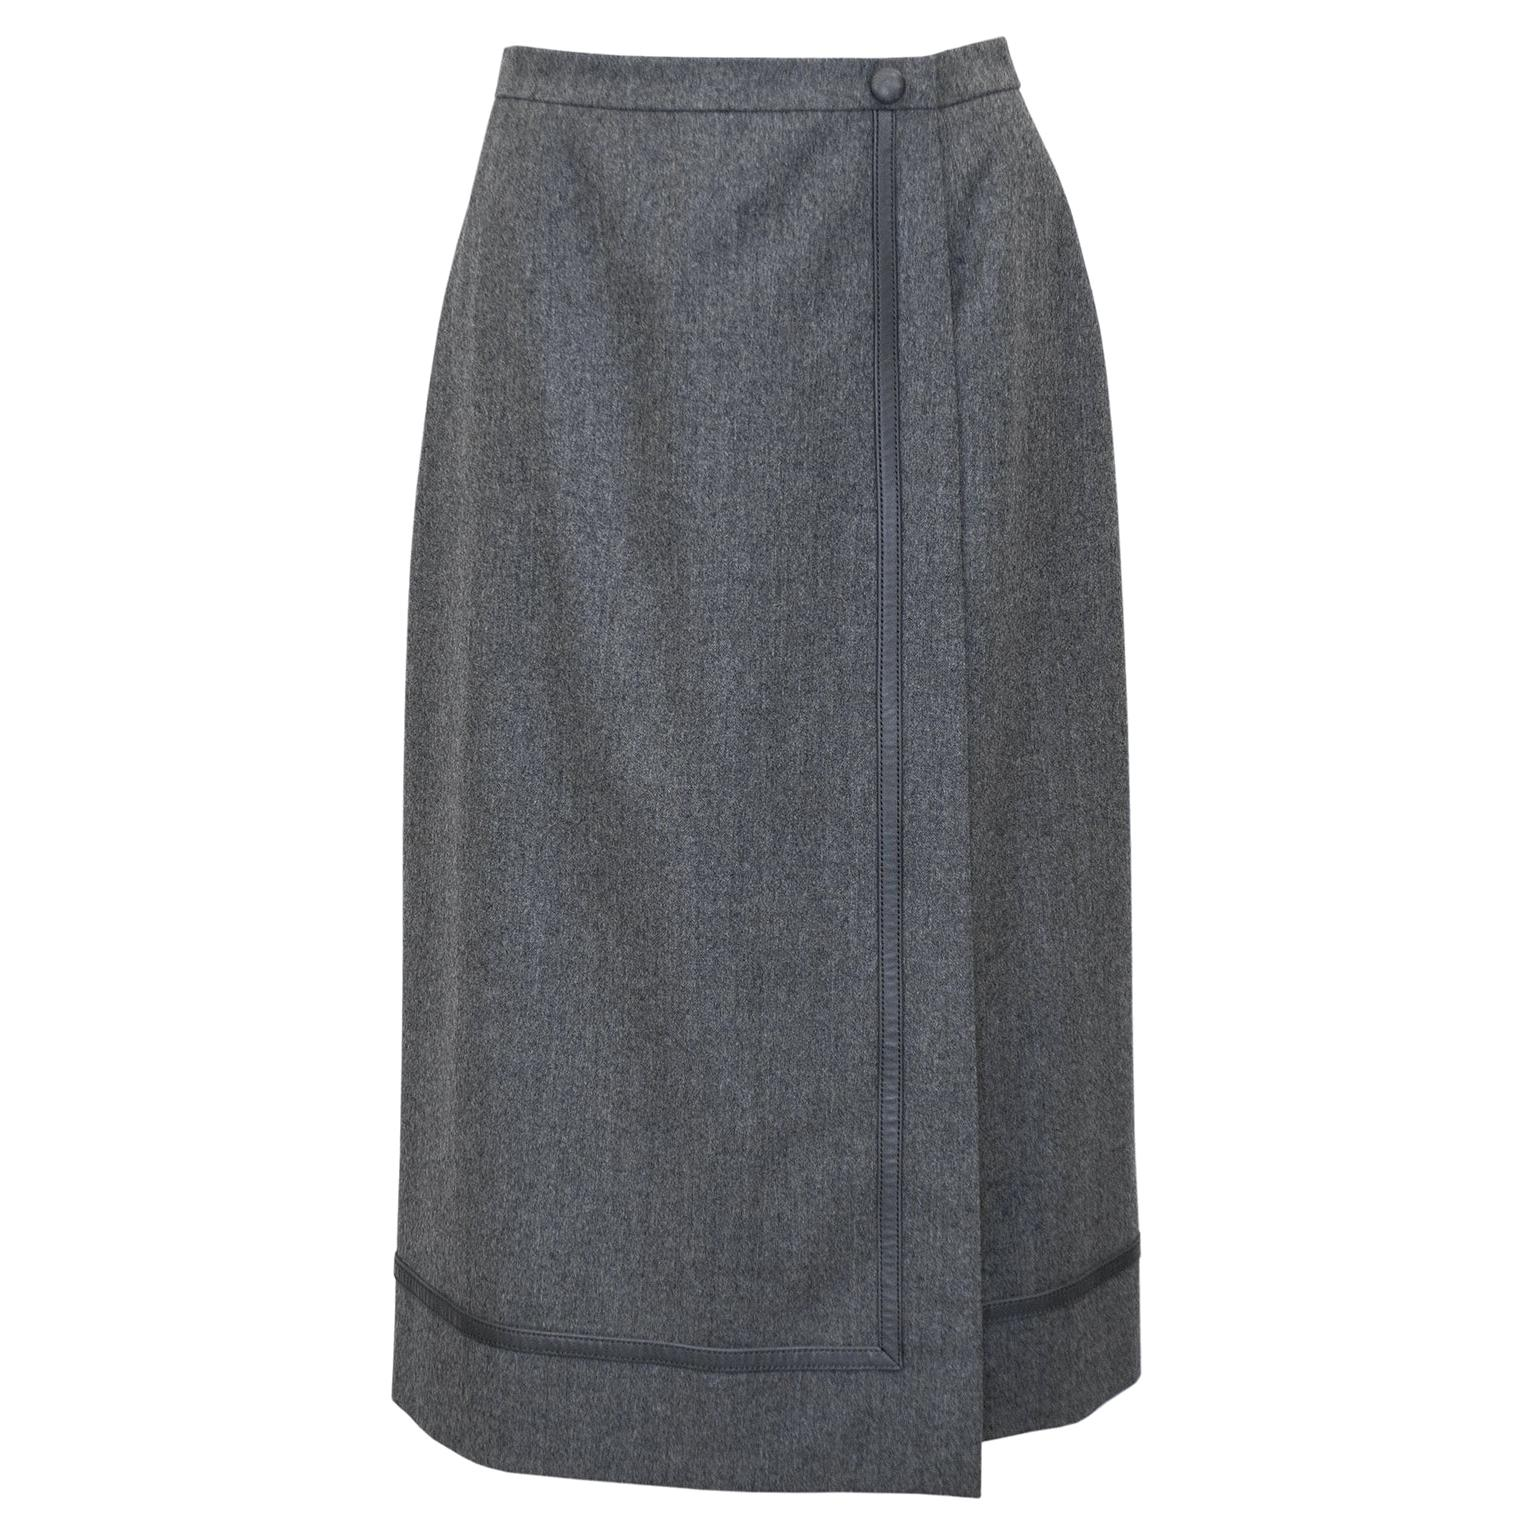 1970s Hermes Grey Wrap Skirt with Matching Leather Trim